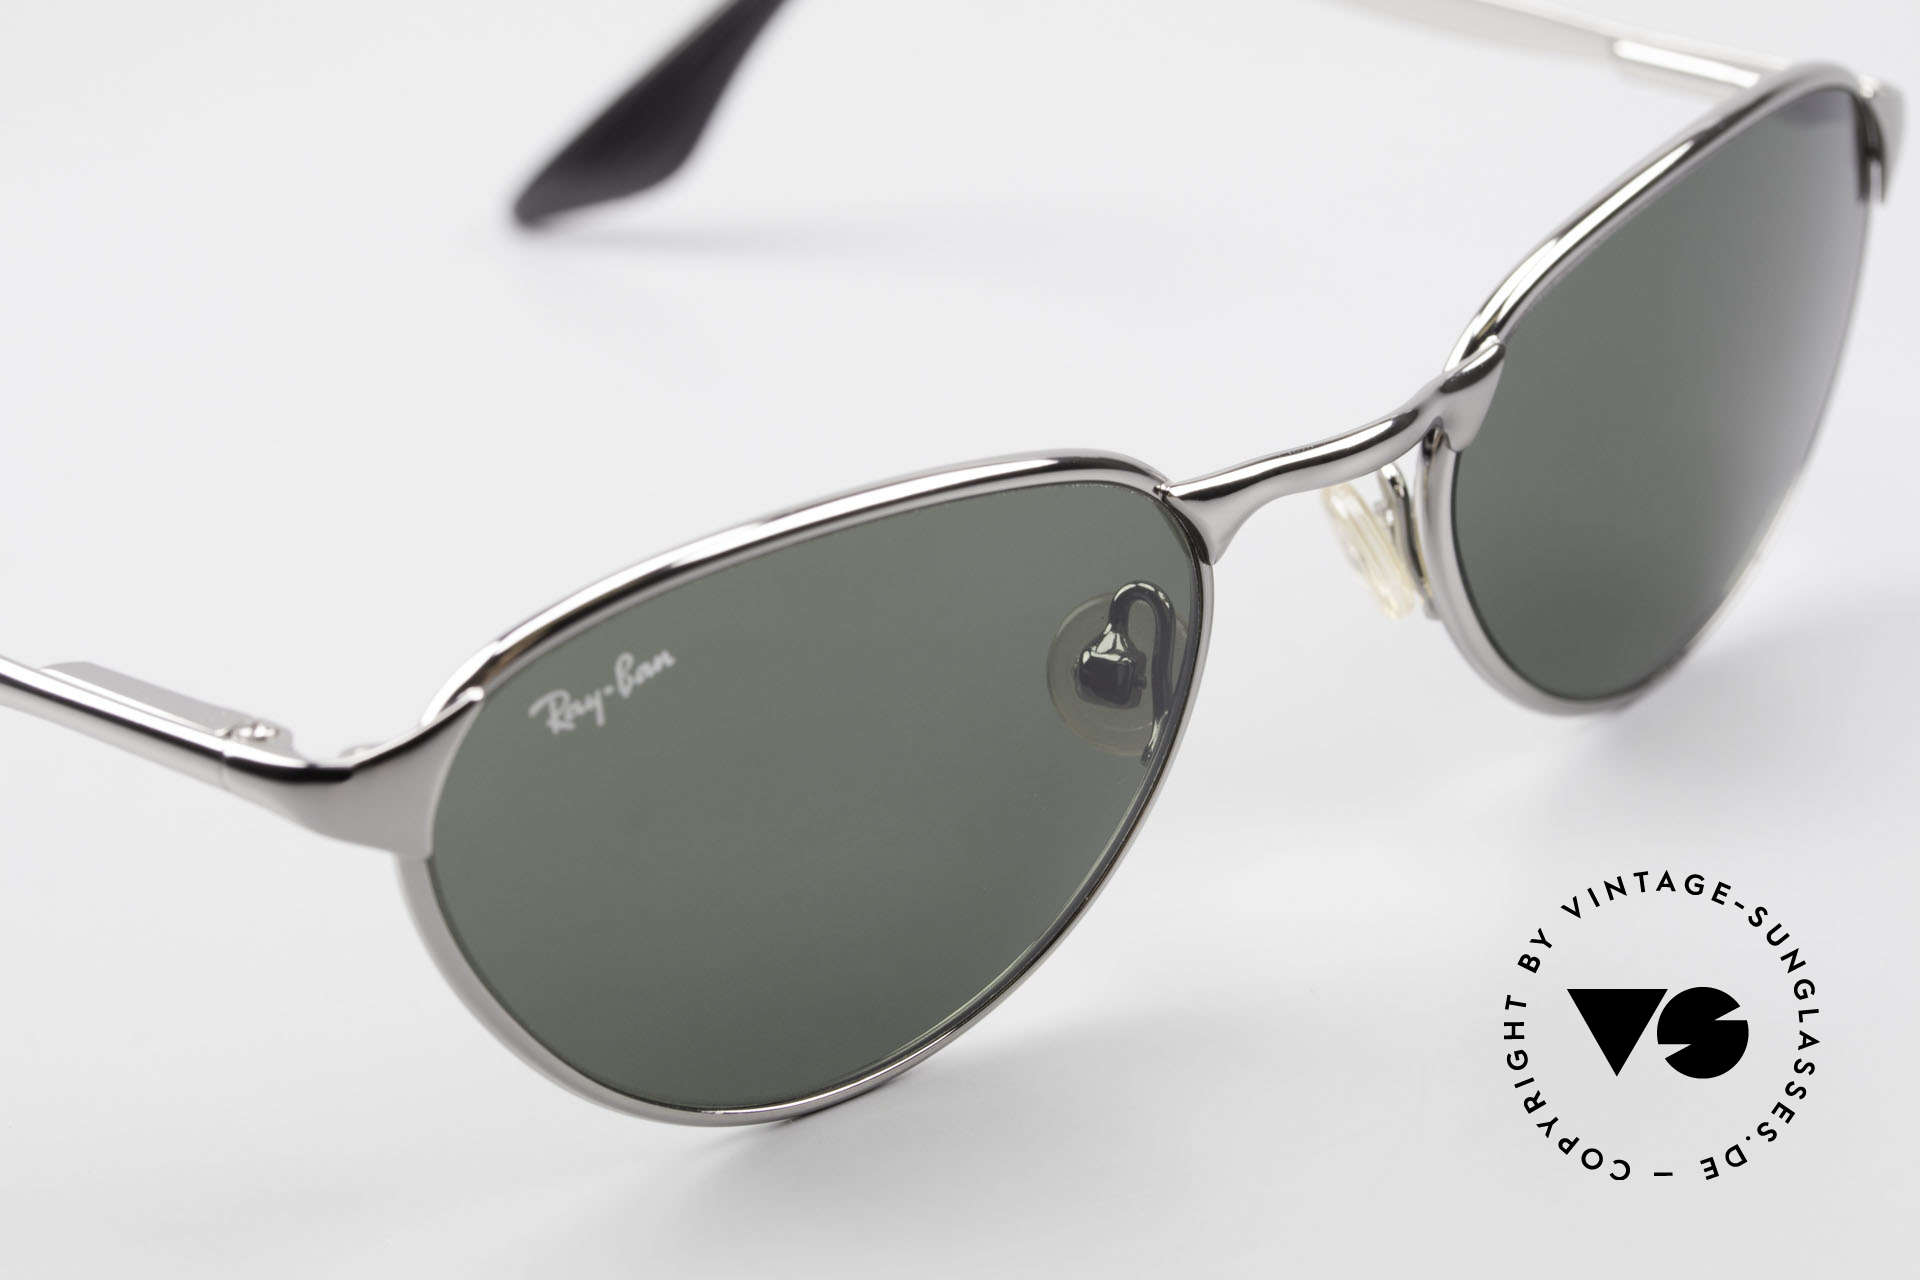 Ray Ban Highstreet Tea Cup Last USA B&L Ray Ban Shades, unworn model: HighStreet Metal Tea Cup, W2843, G15, Made for Women